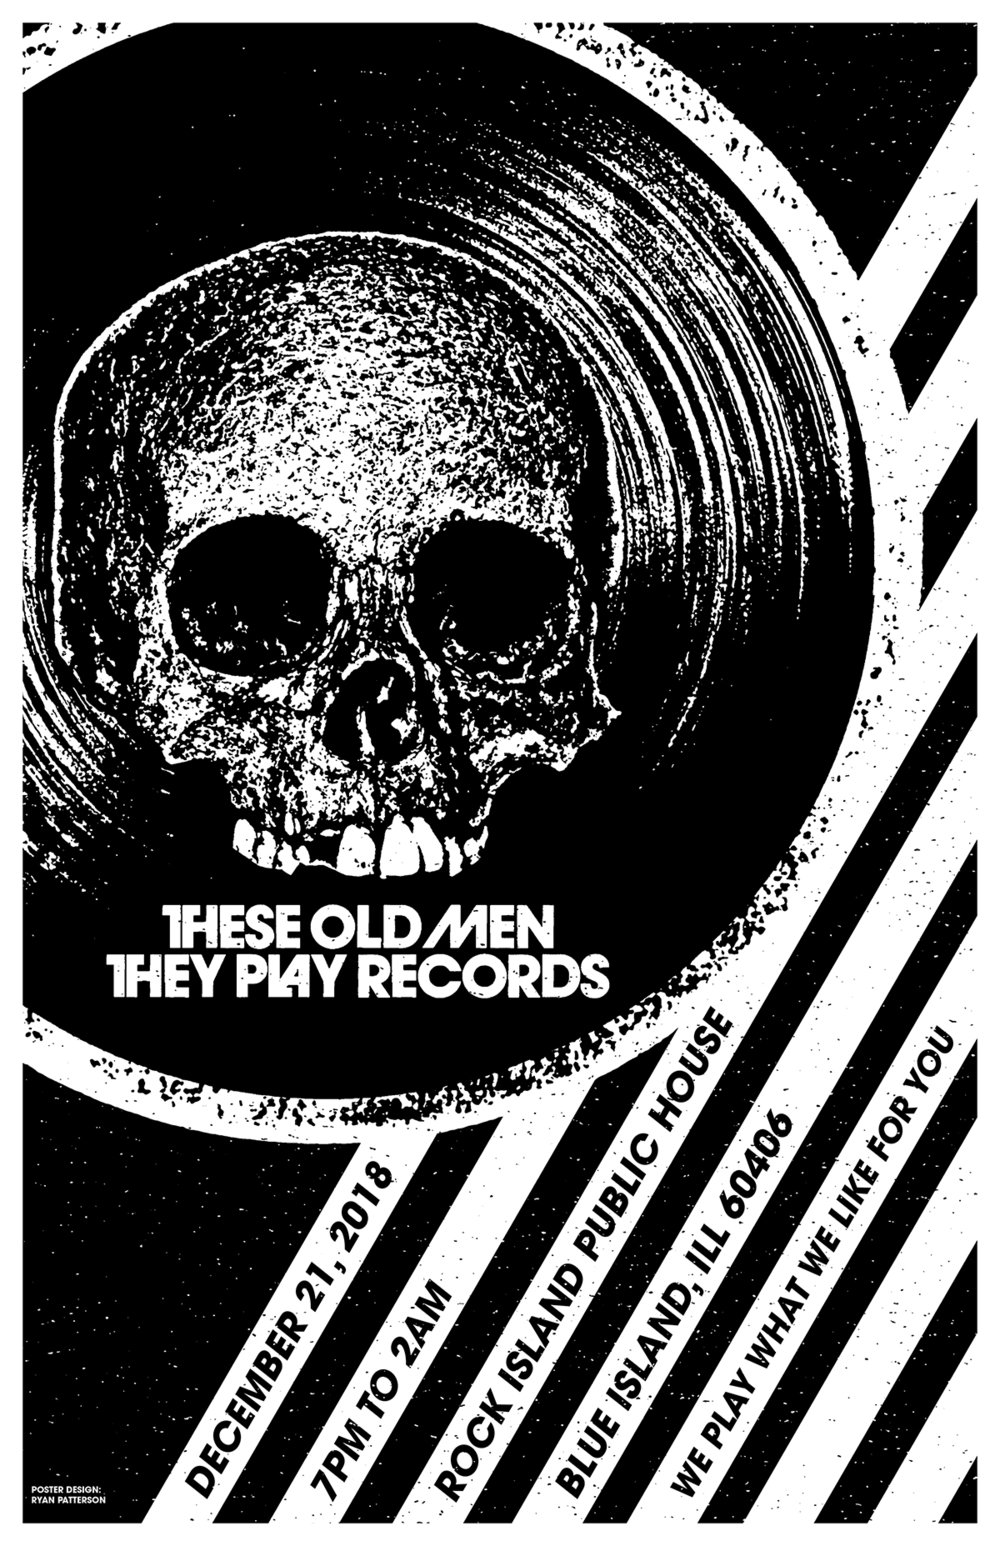 These Old Men They Play Records - The December Edition